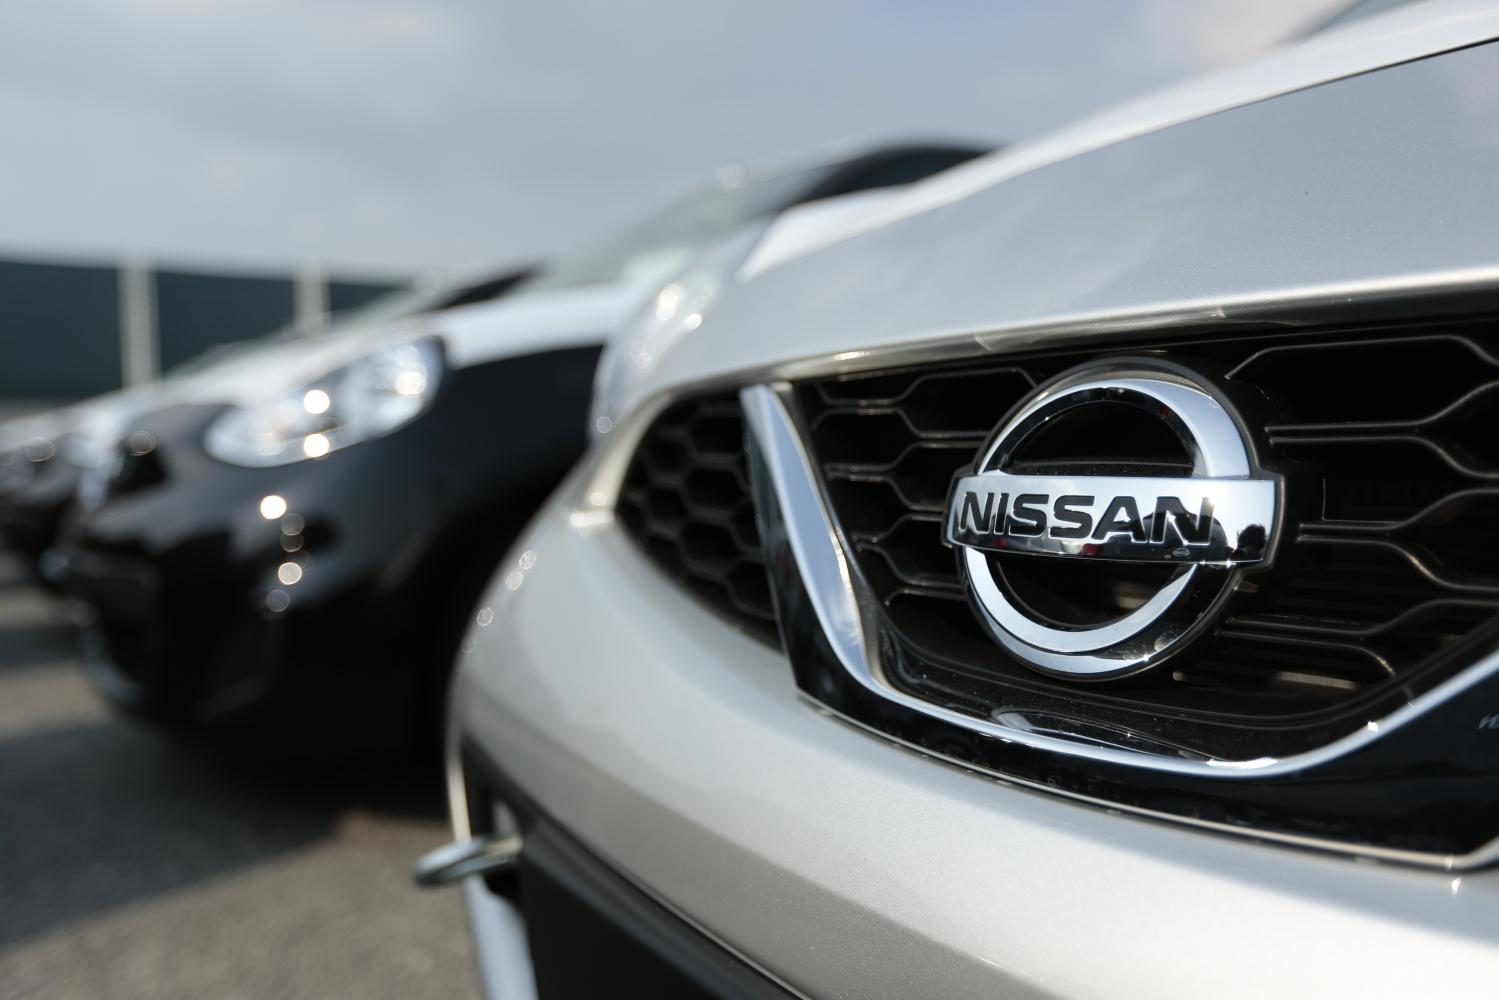 Nissan alters production amid outbreak